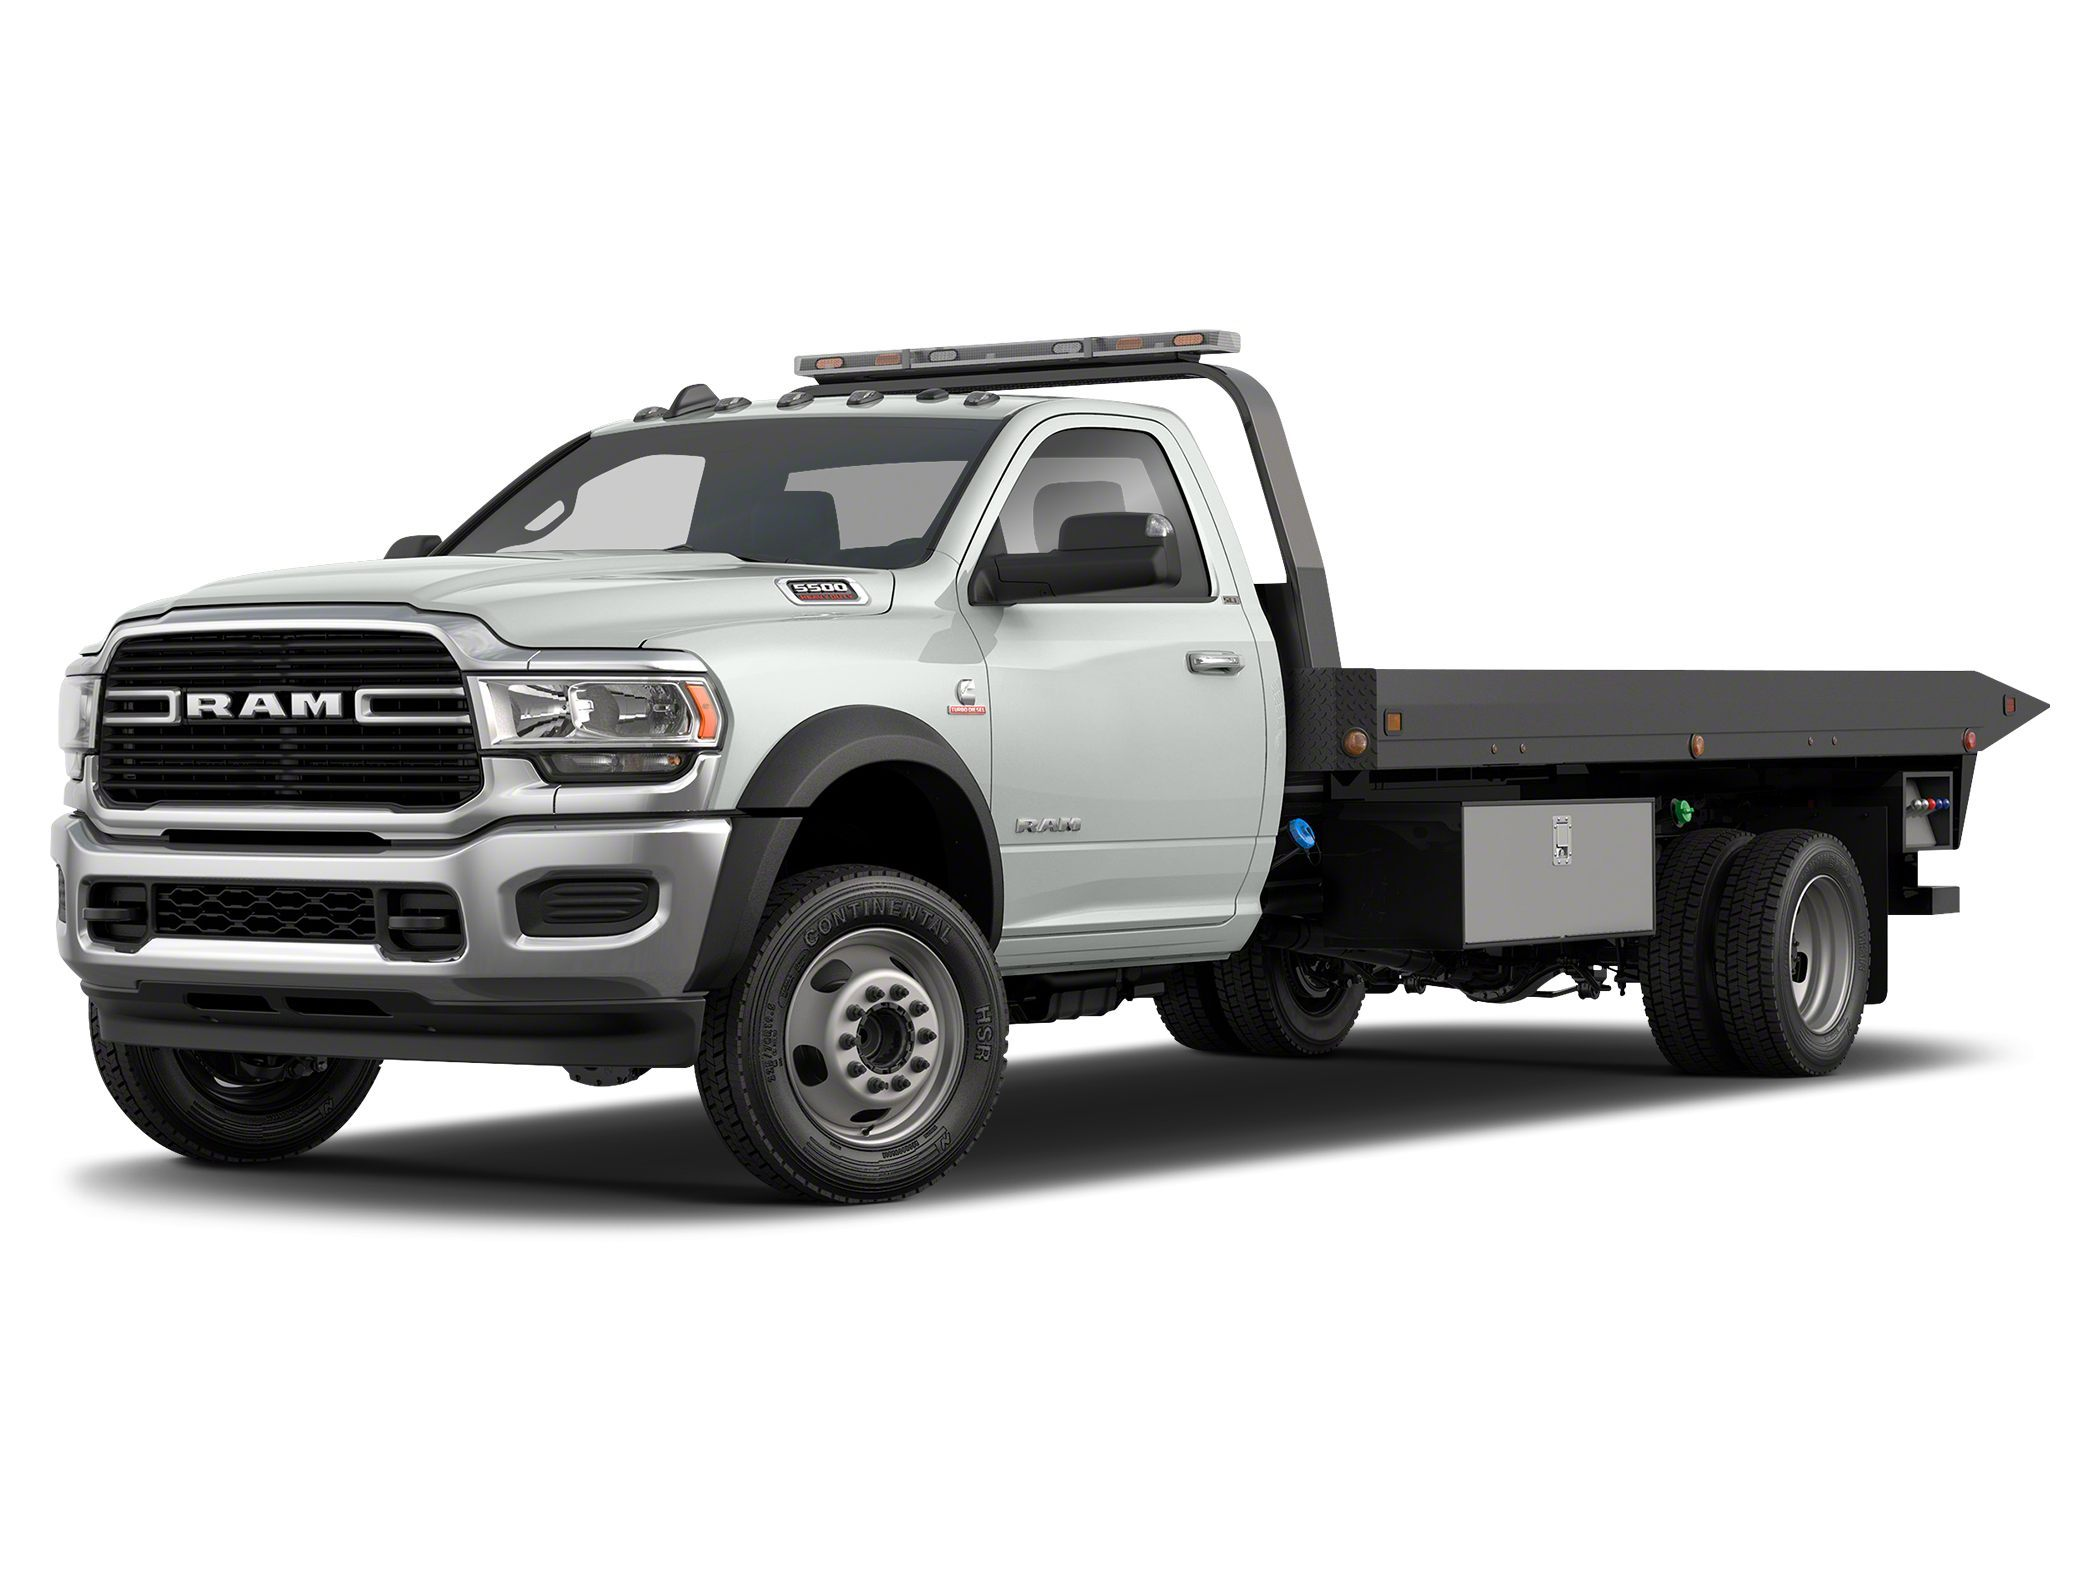 new 2020 Ram 5500 Chassis car